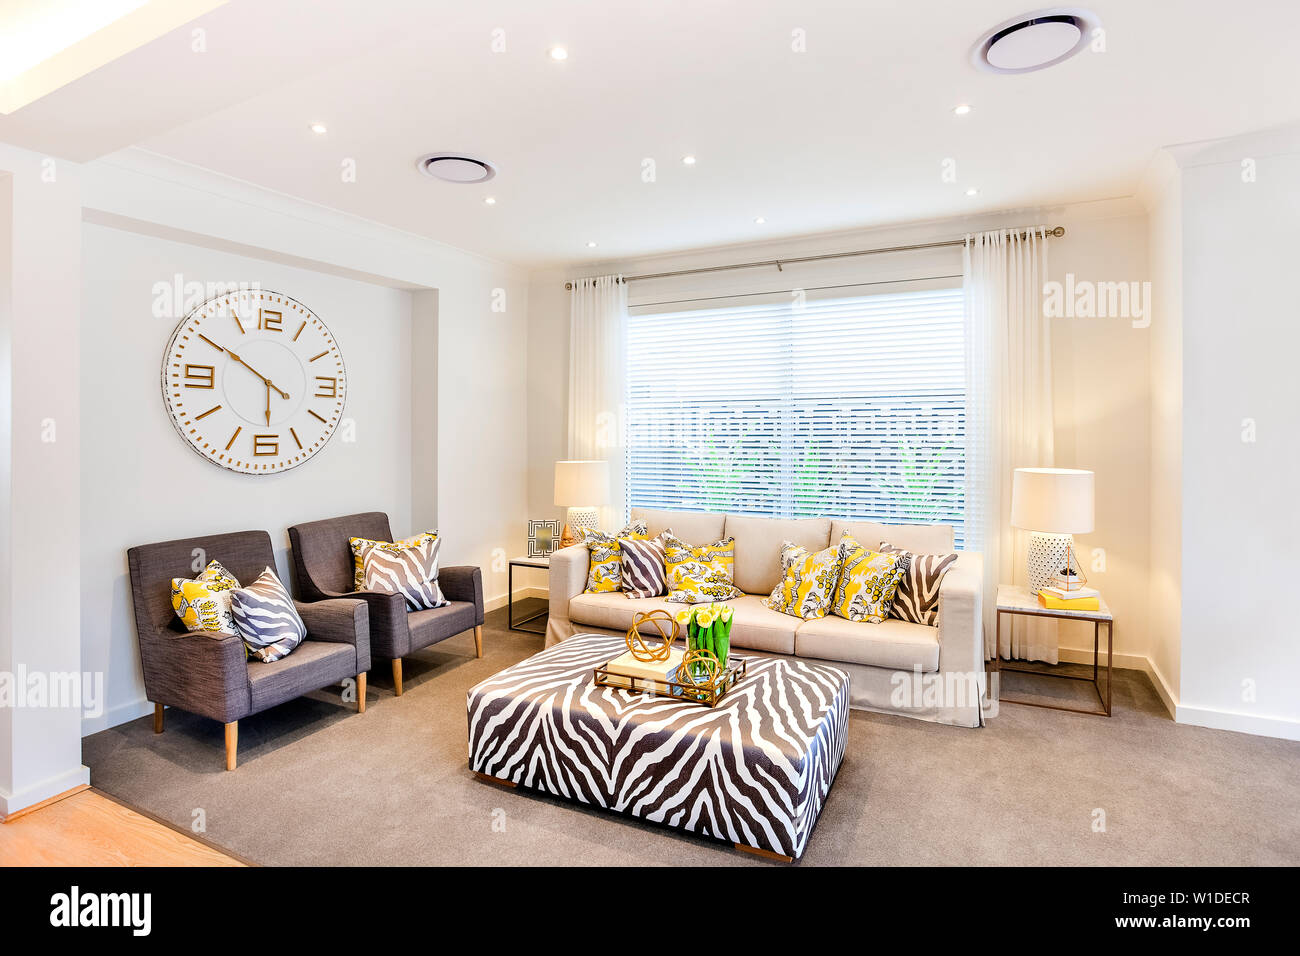 Living Room With A Stylish Sofa Set And A Quirky Center Table With Grey Carpeting And Wall Clock Behind The Sofa Chairs Stock Photo Alamy